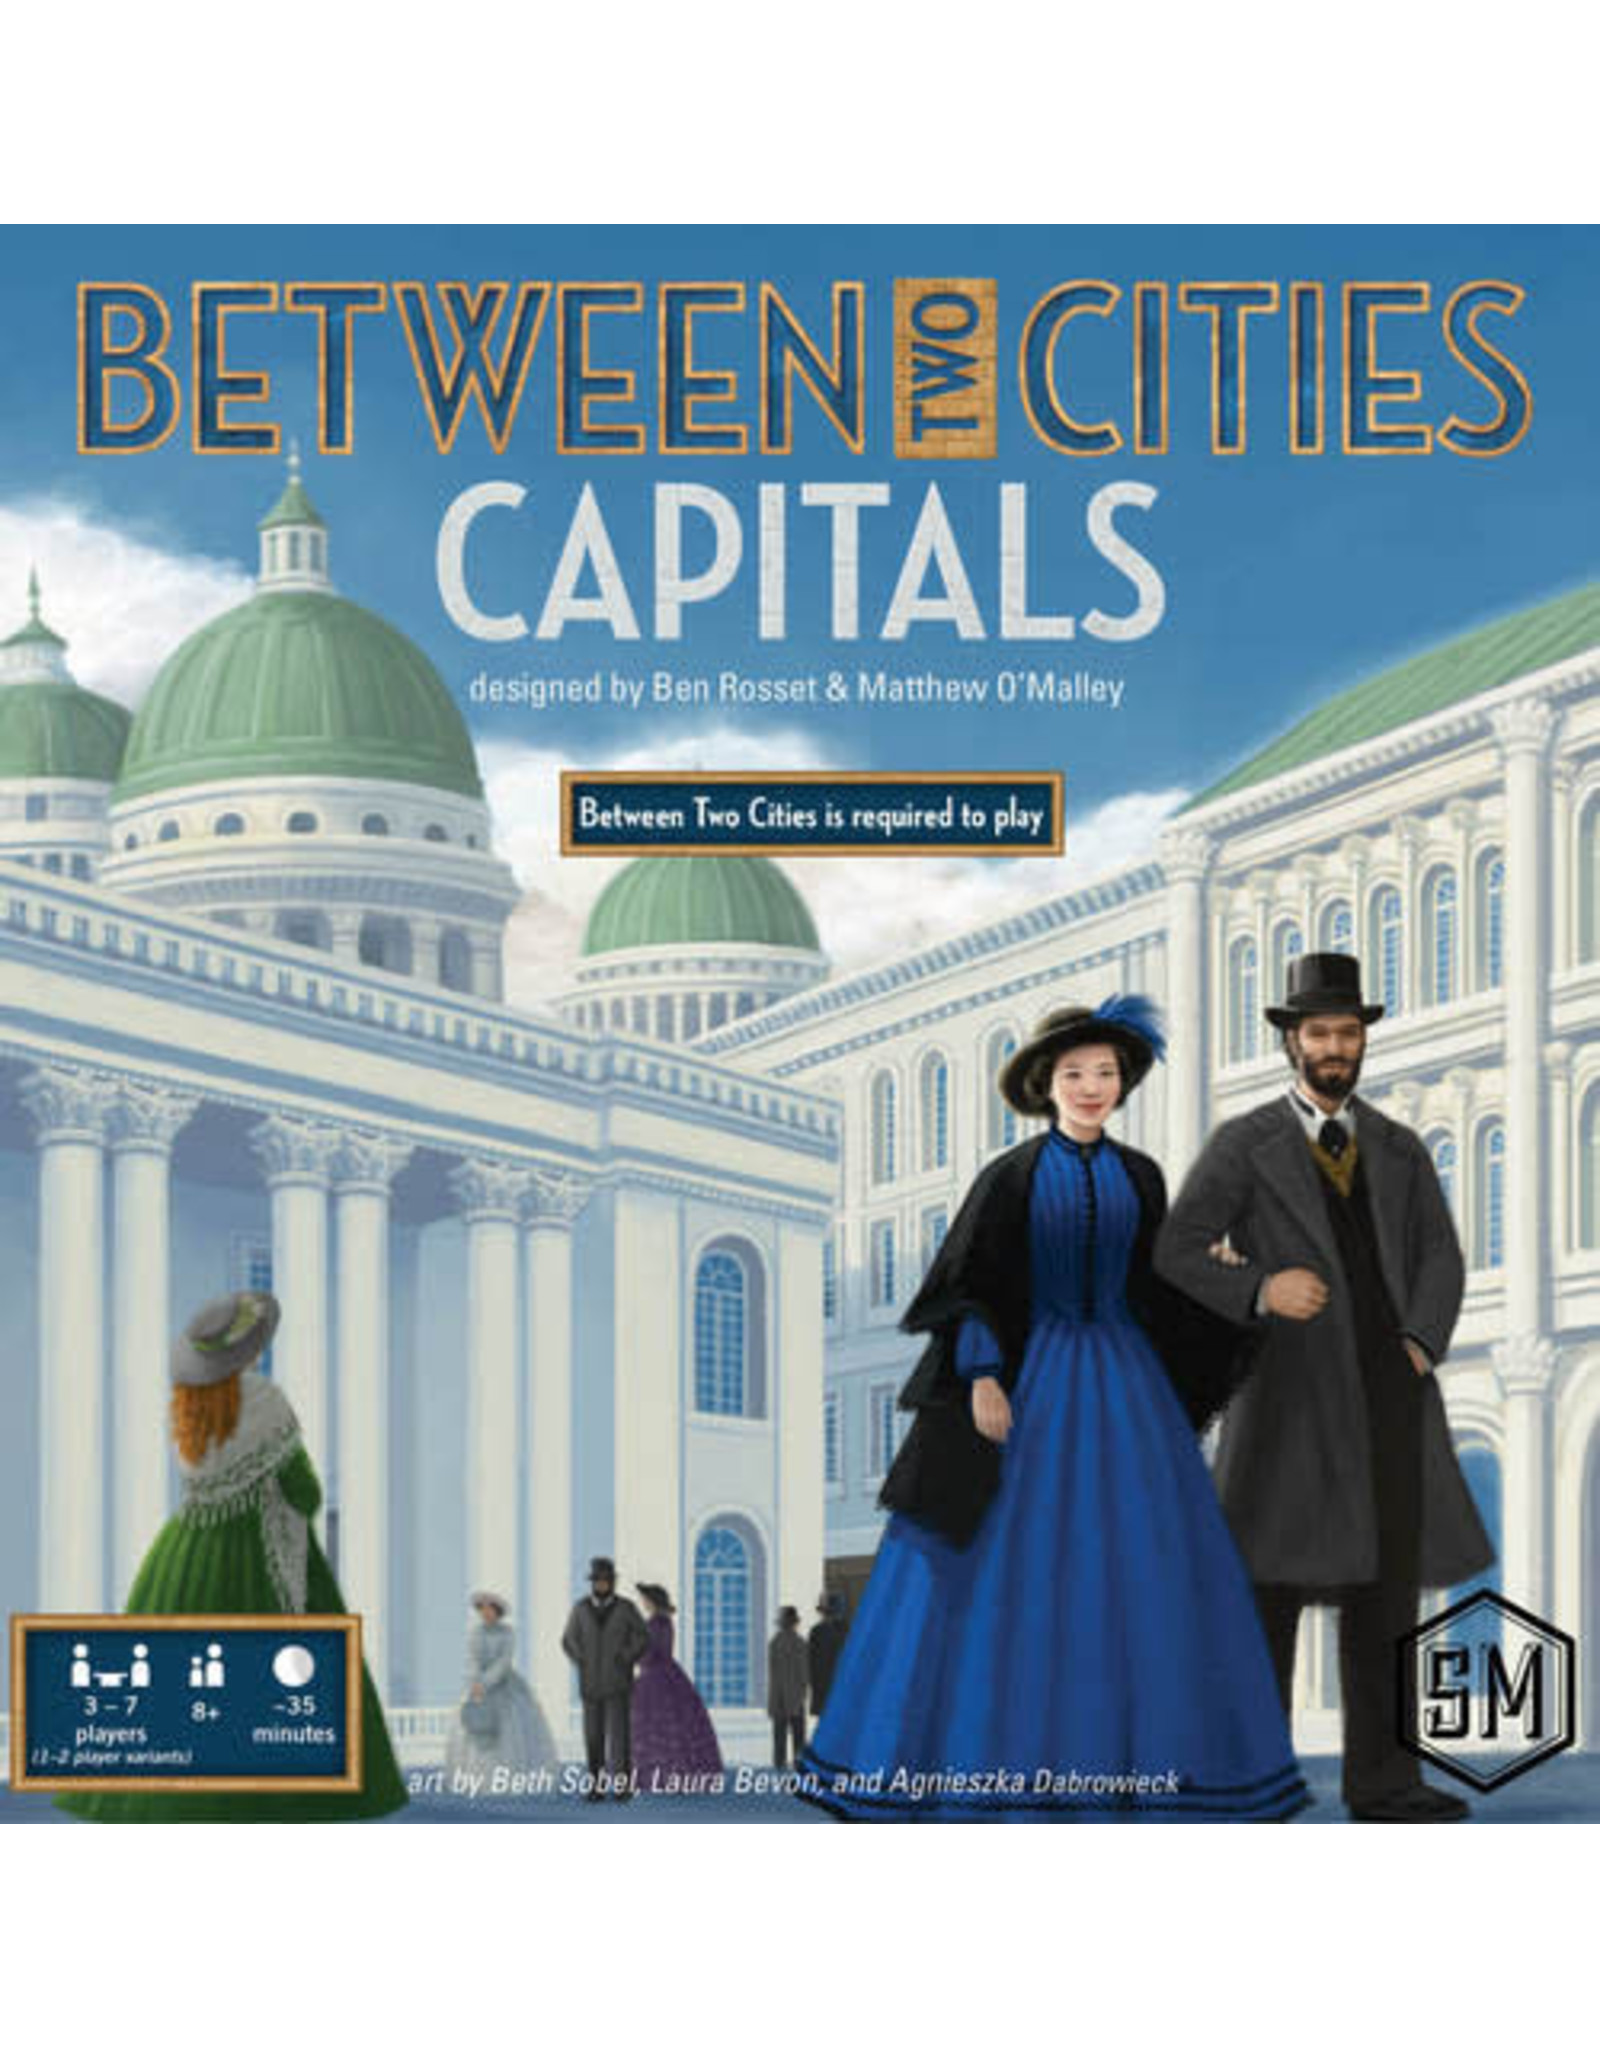 Between Two Cities Capitals Board Game